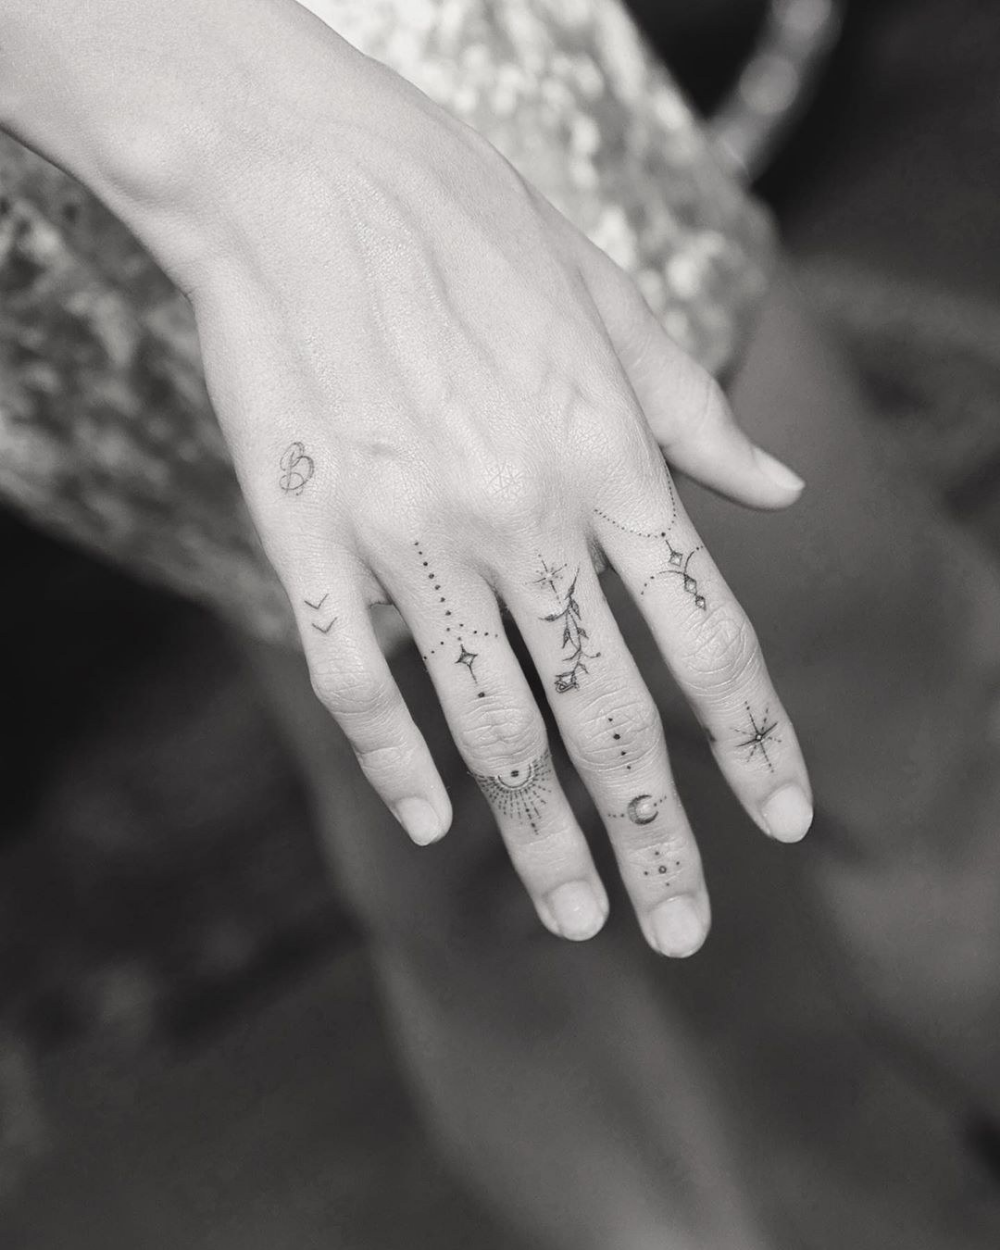 The Coolest Tiny Tattoos Spotted on Celebrities